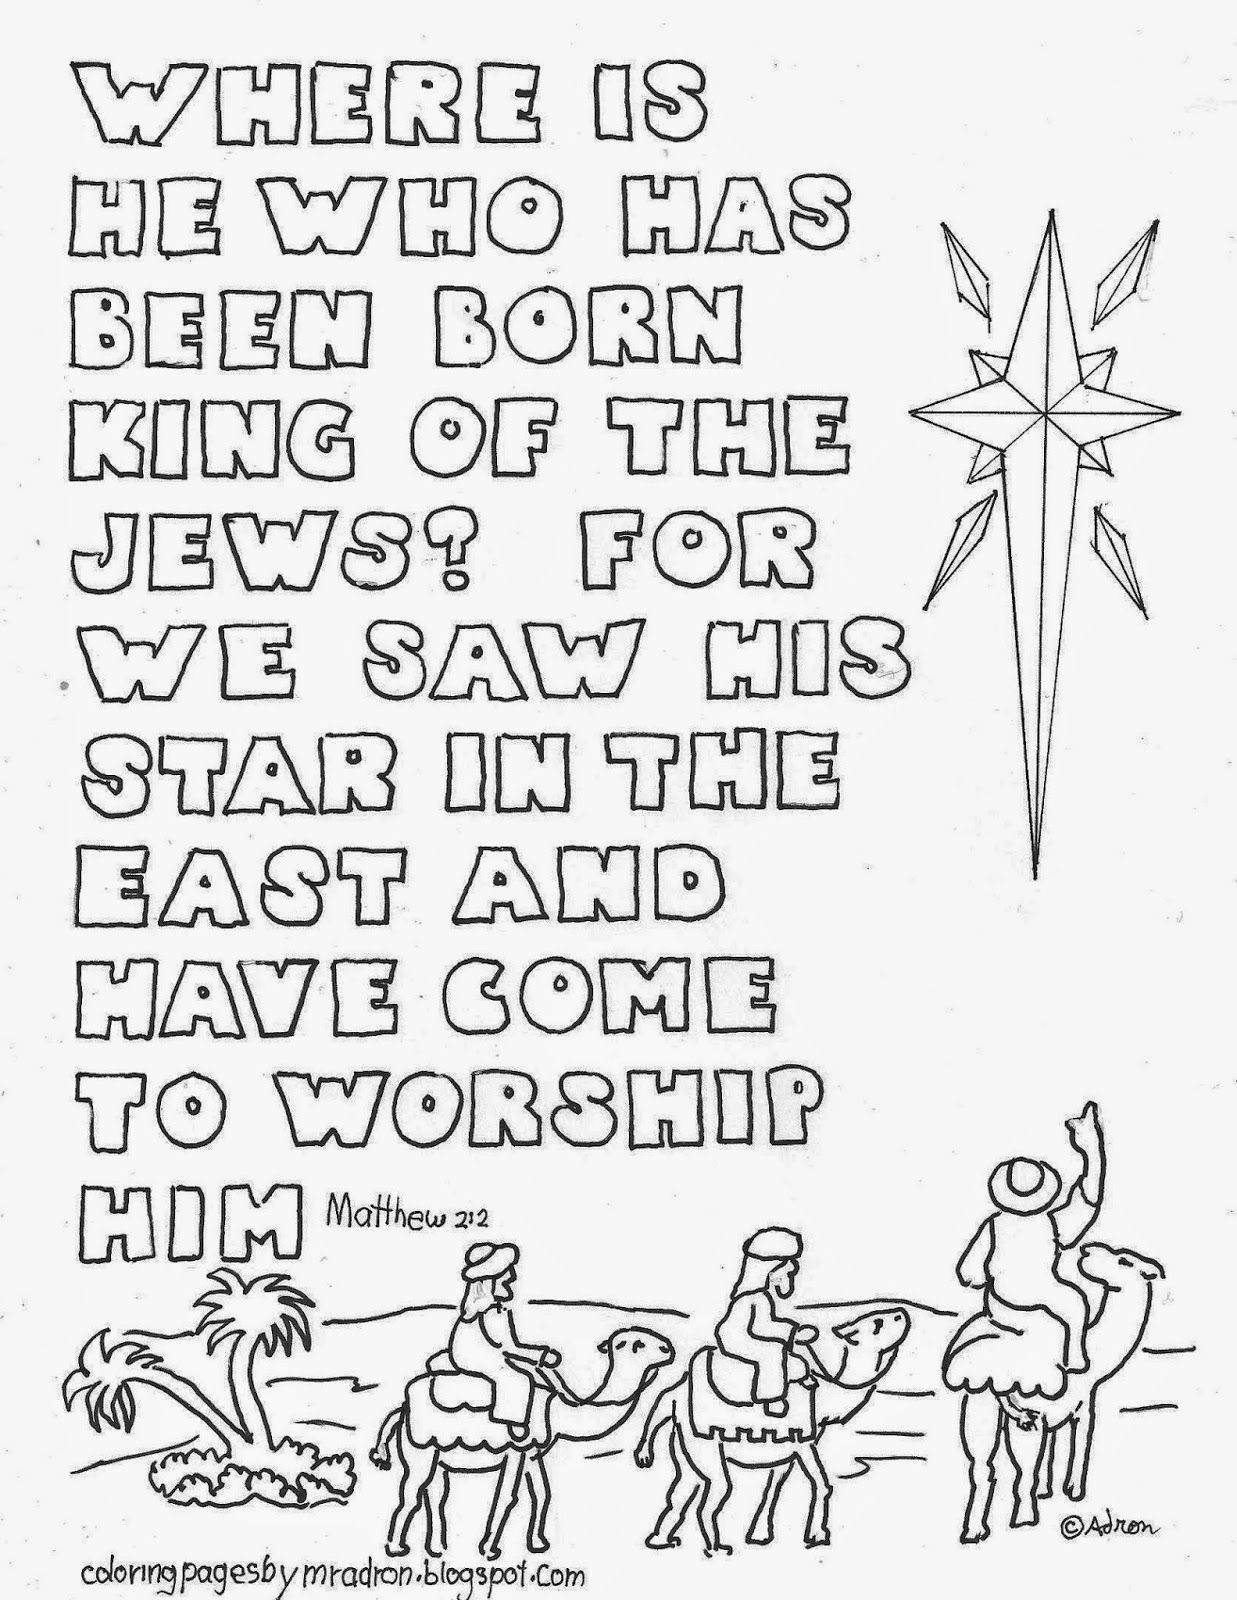 christmas star and bible verse coloring page see more at my blog http